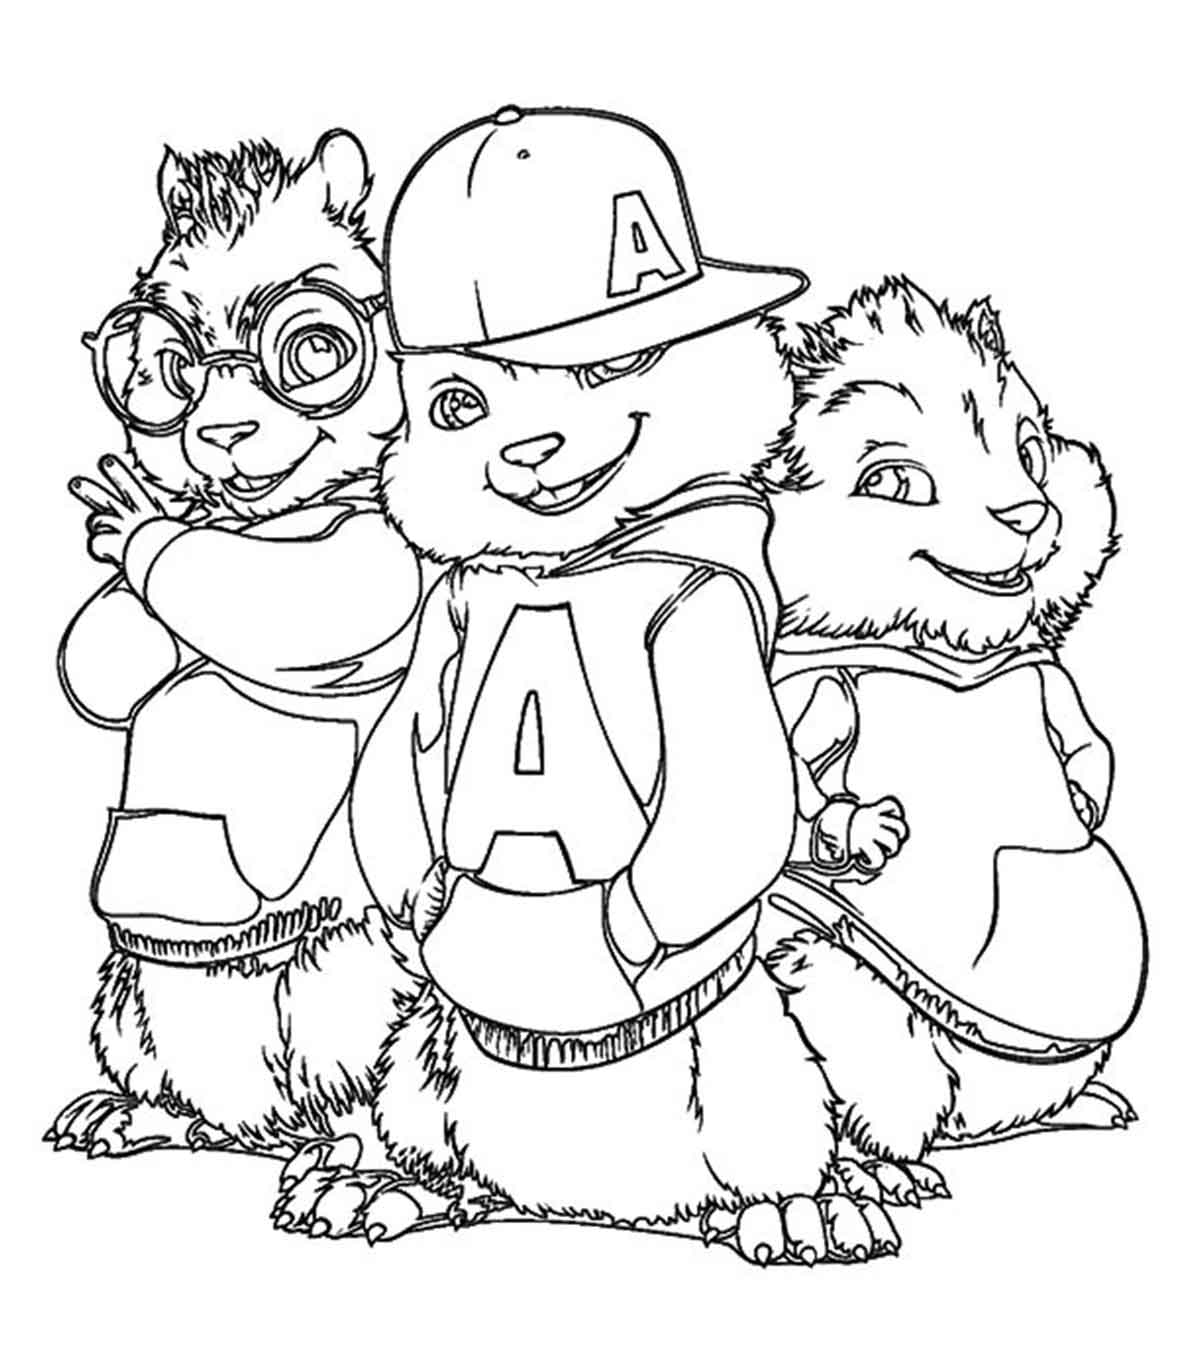 Top 25 Free Printable Alvin And The Chipmunks Coloring Pages